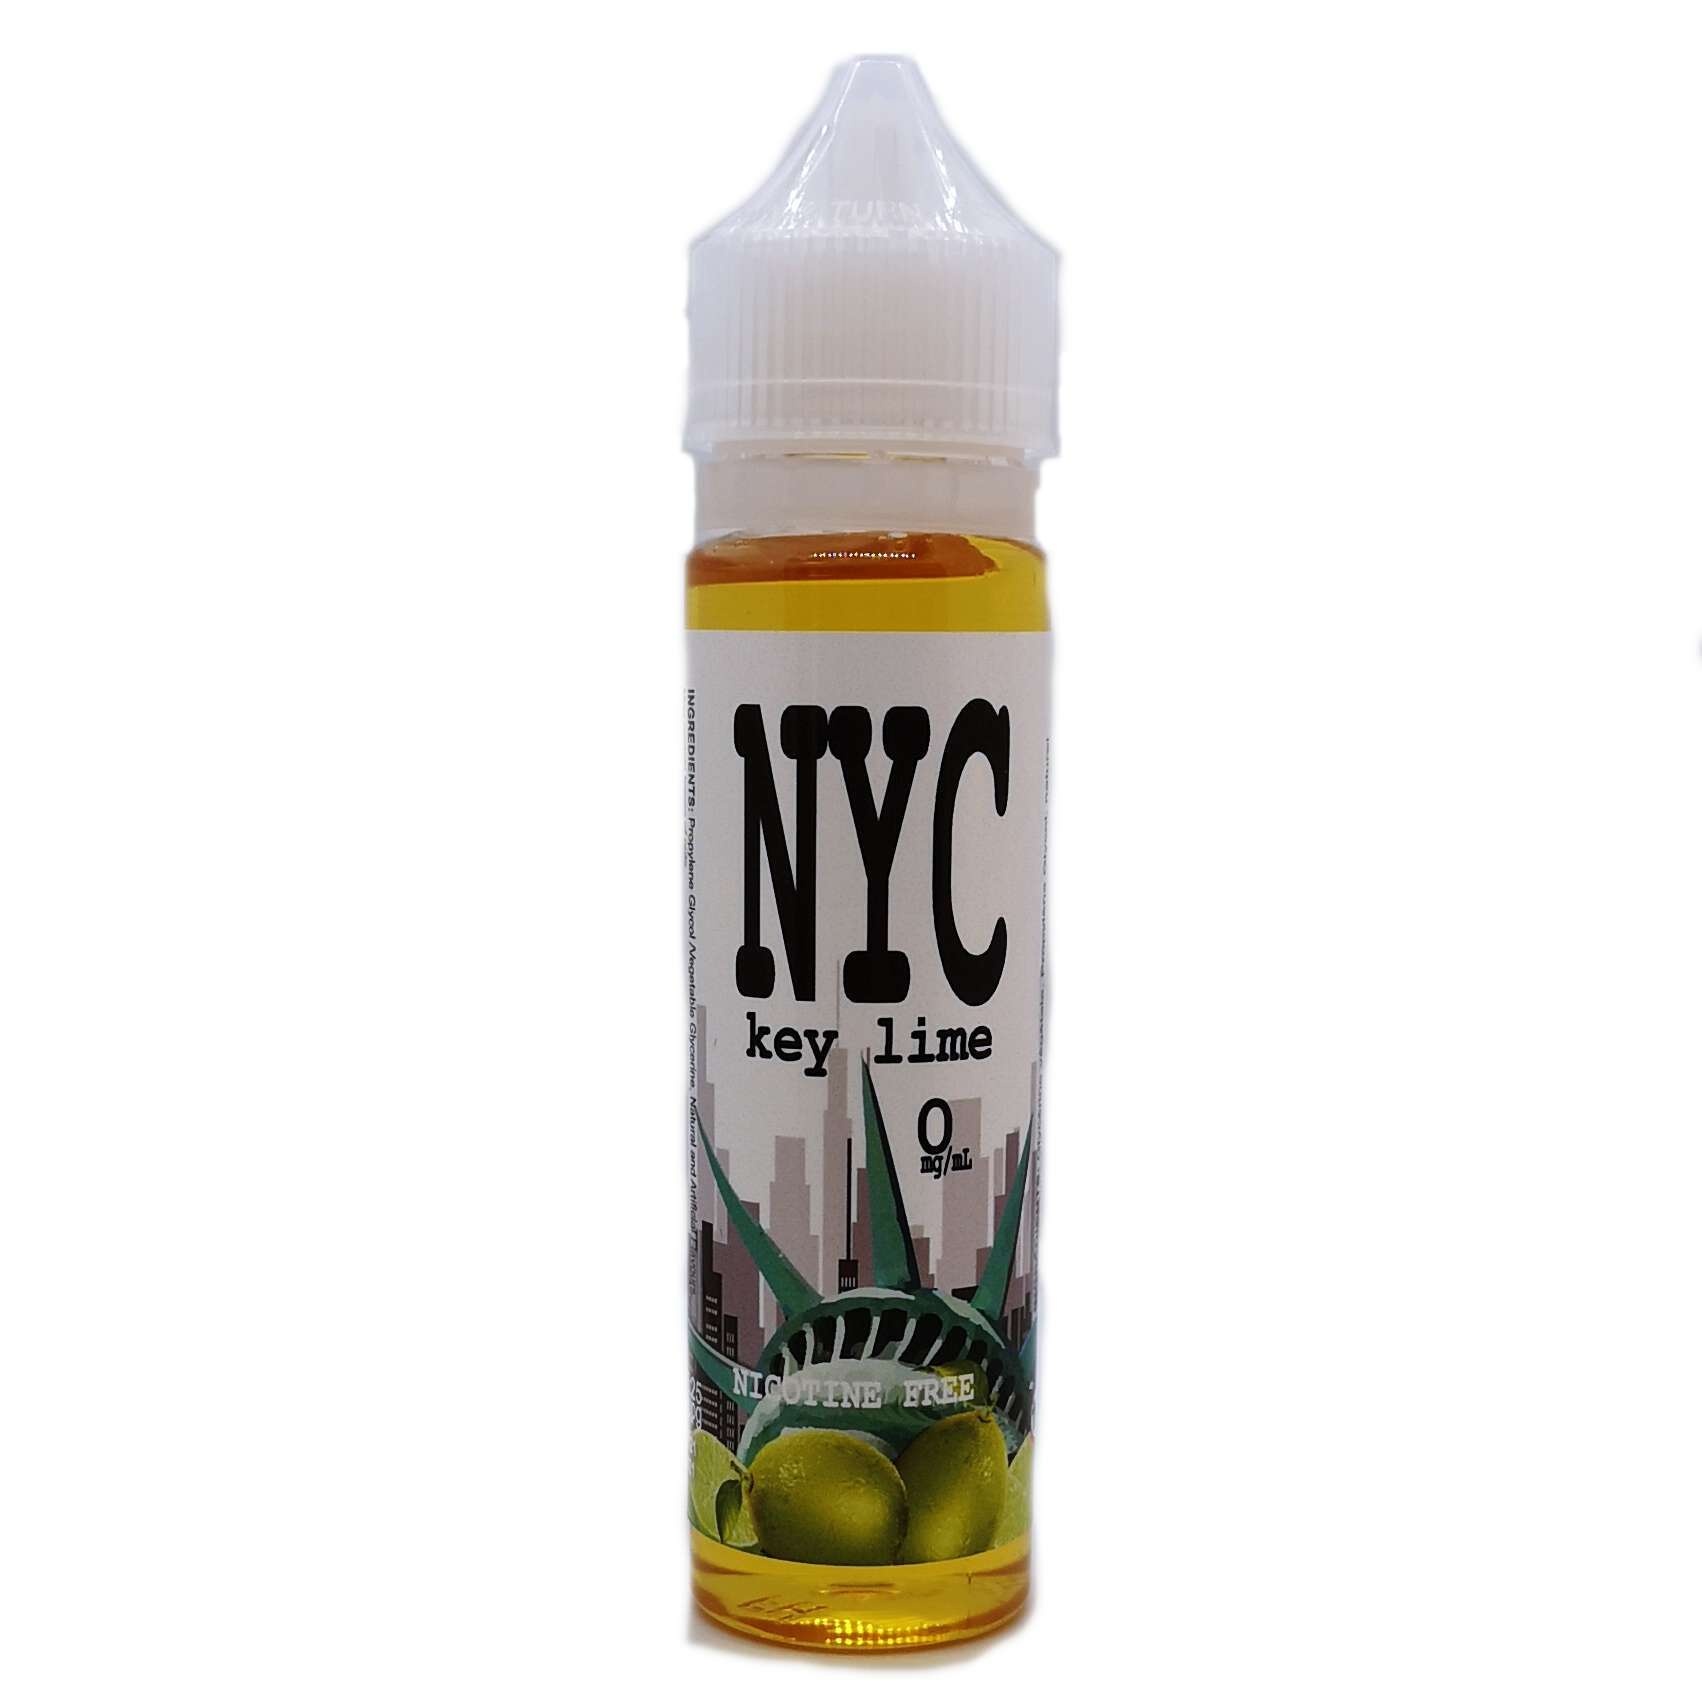 NYC-KEY-LIME-CHEESECAKE Mango Mania MonkEjuice by Nekkid Monk